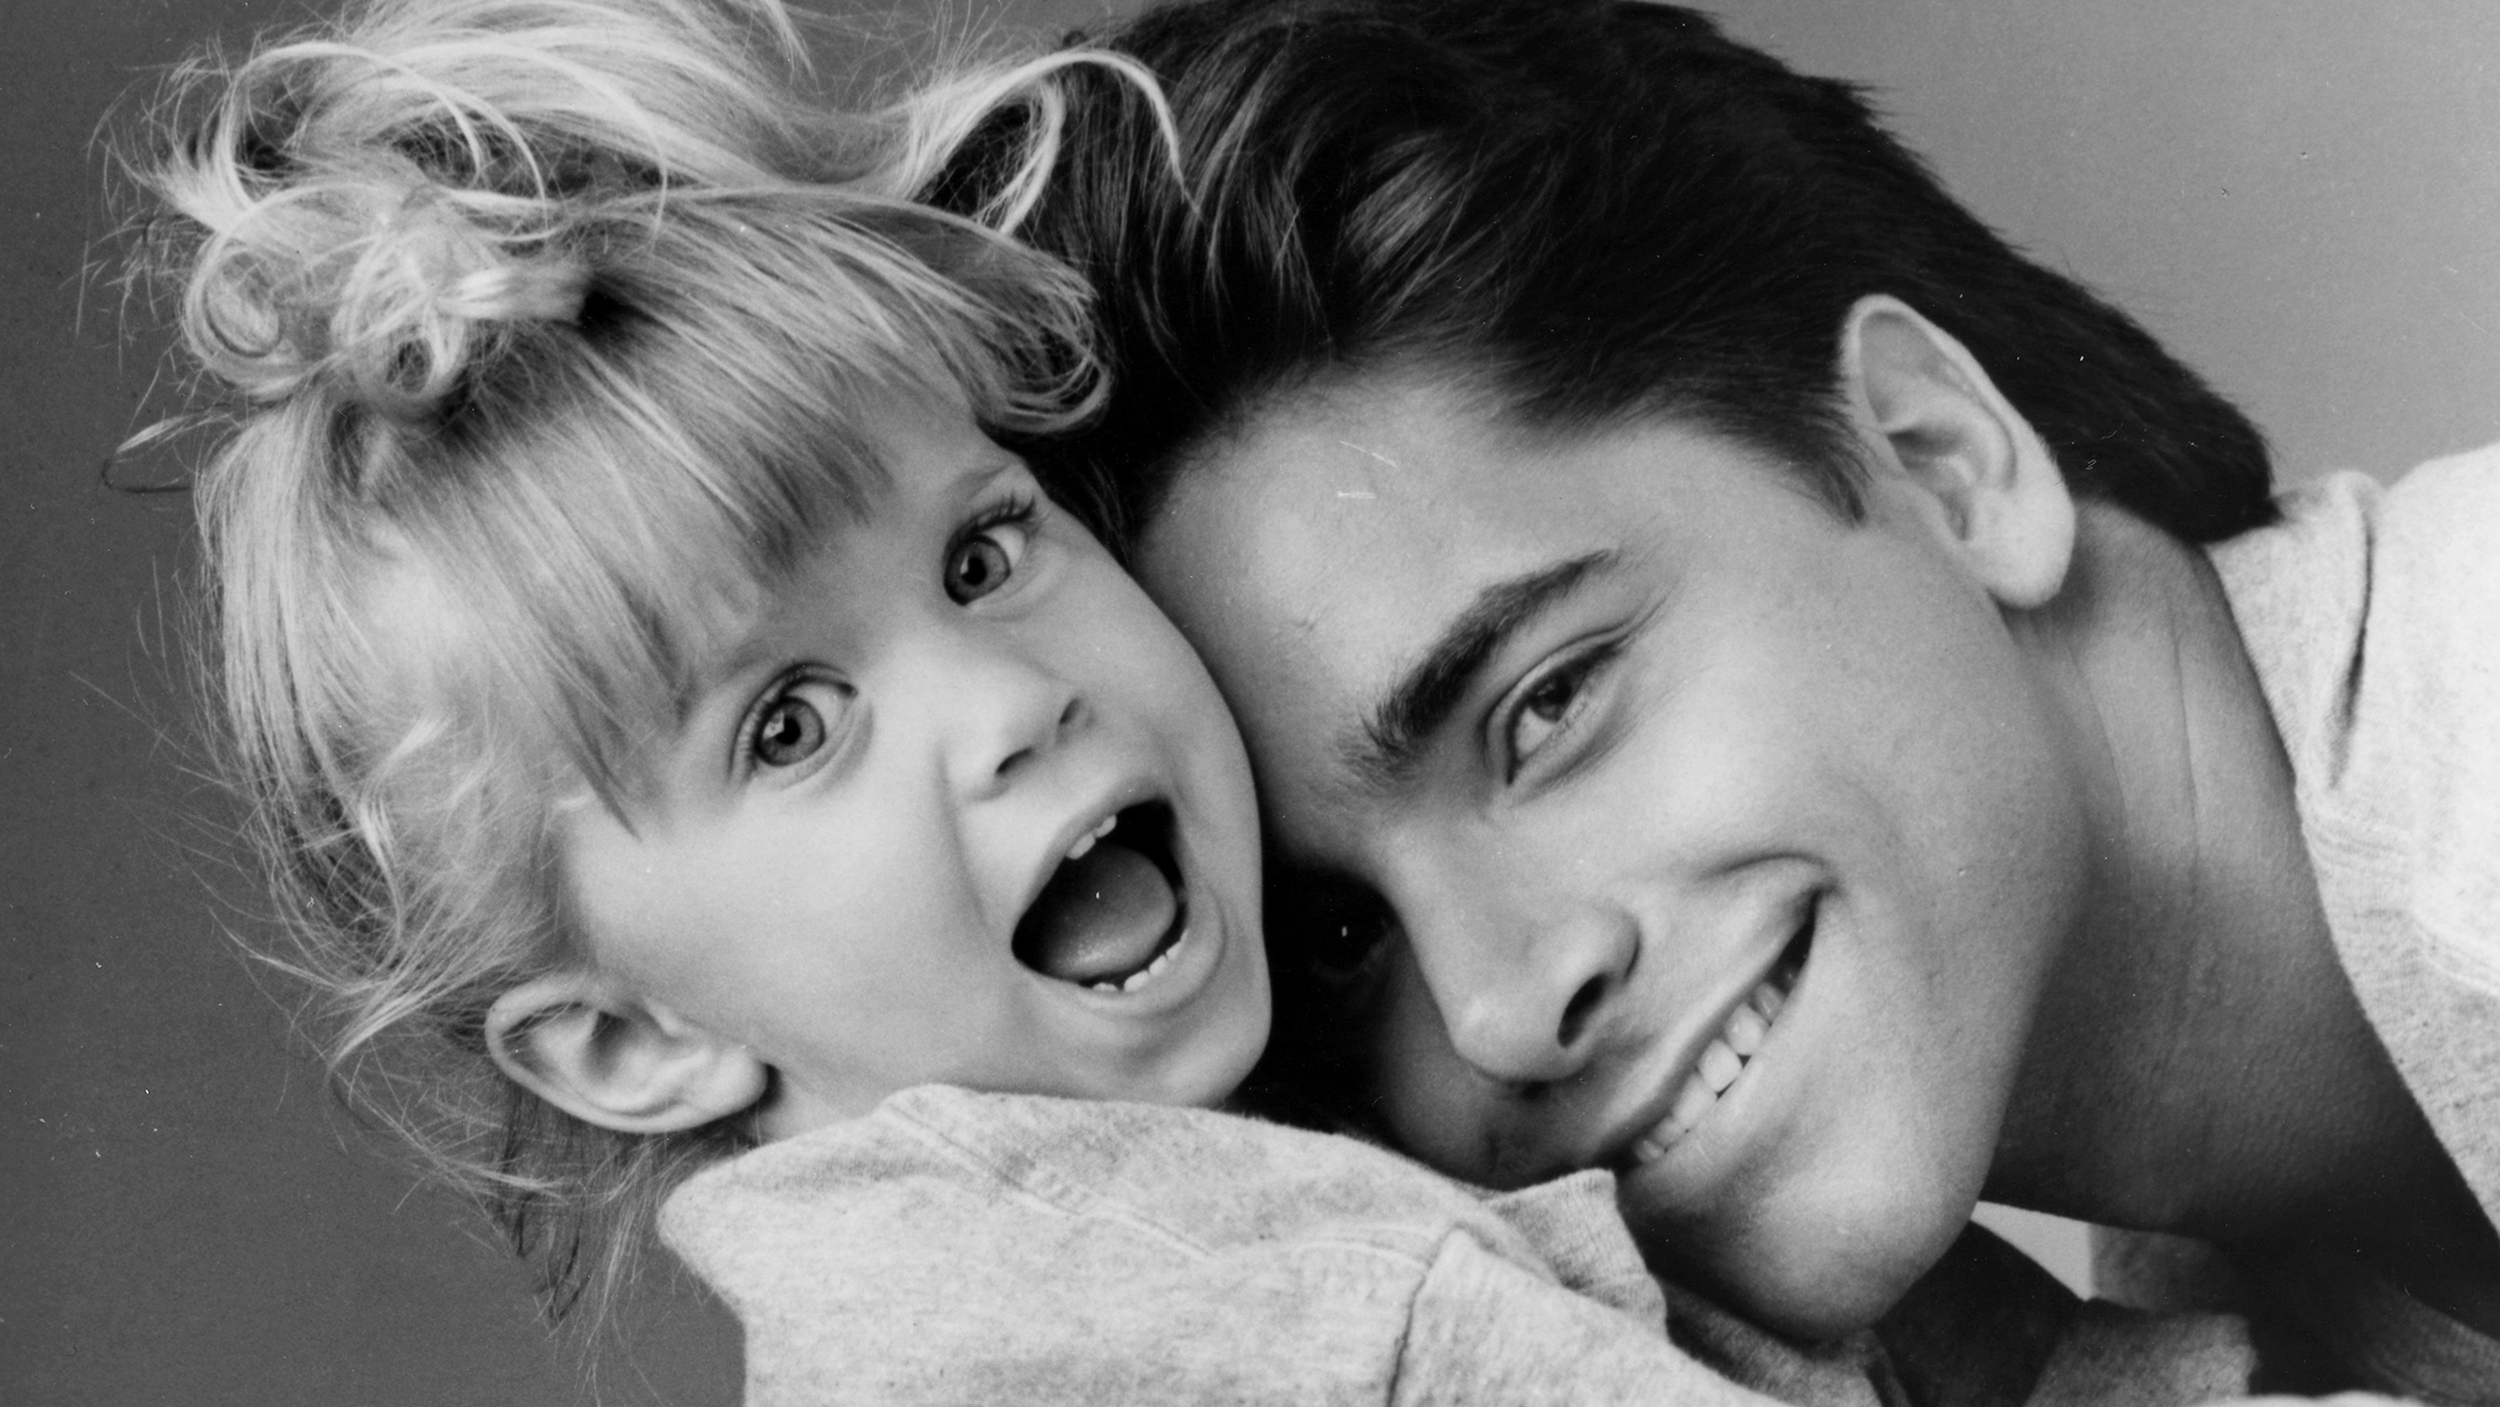 John Stamos s knocked around by Olsen twins in adorable